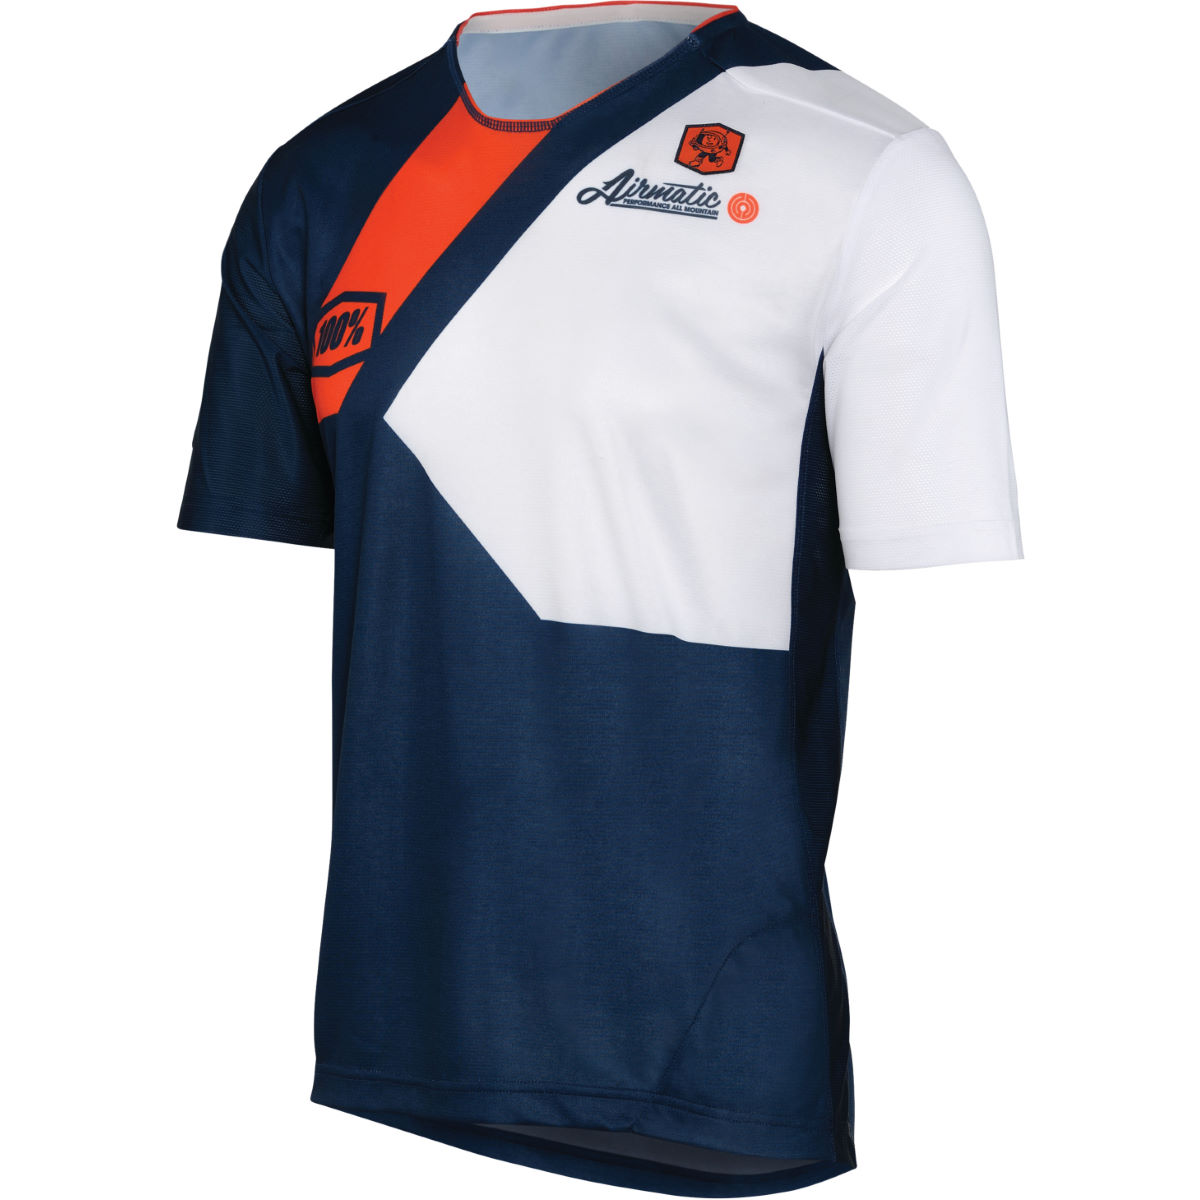 100% Airmatic Honor Jersey - Maillots